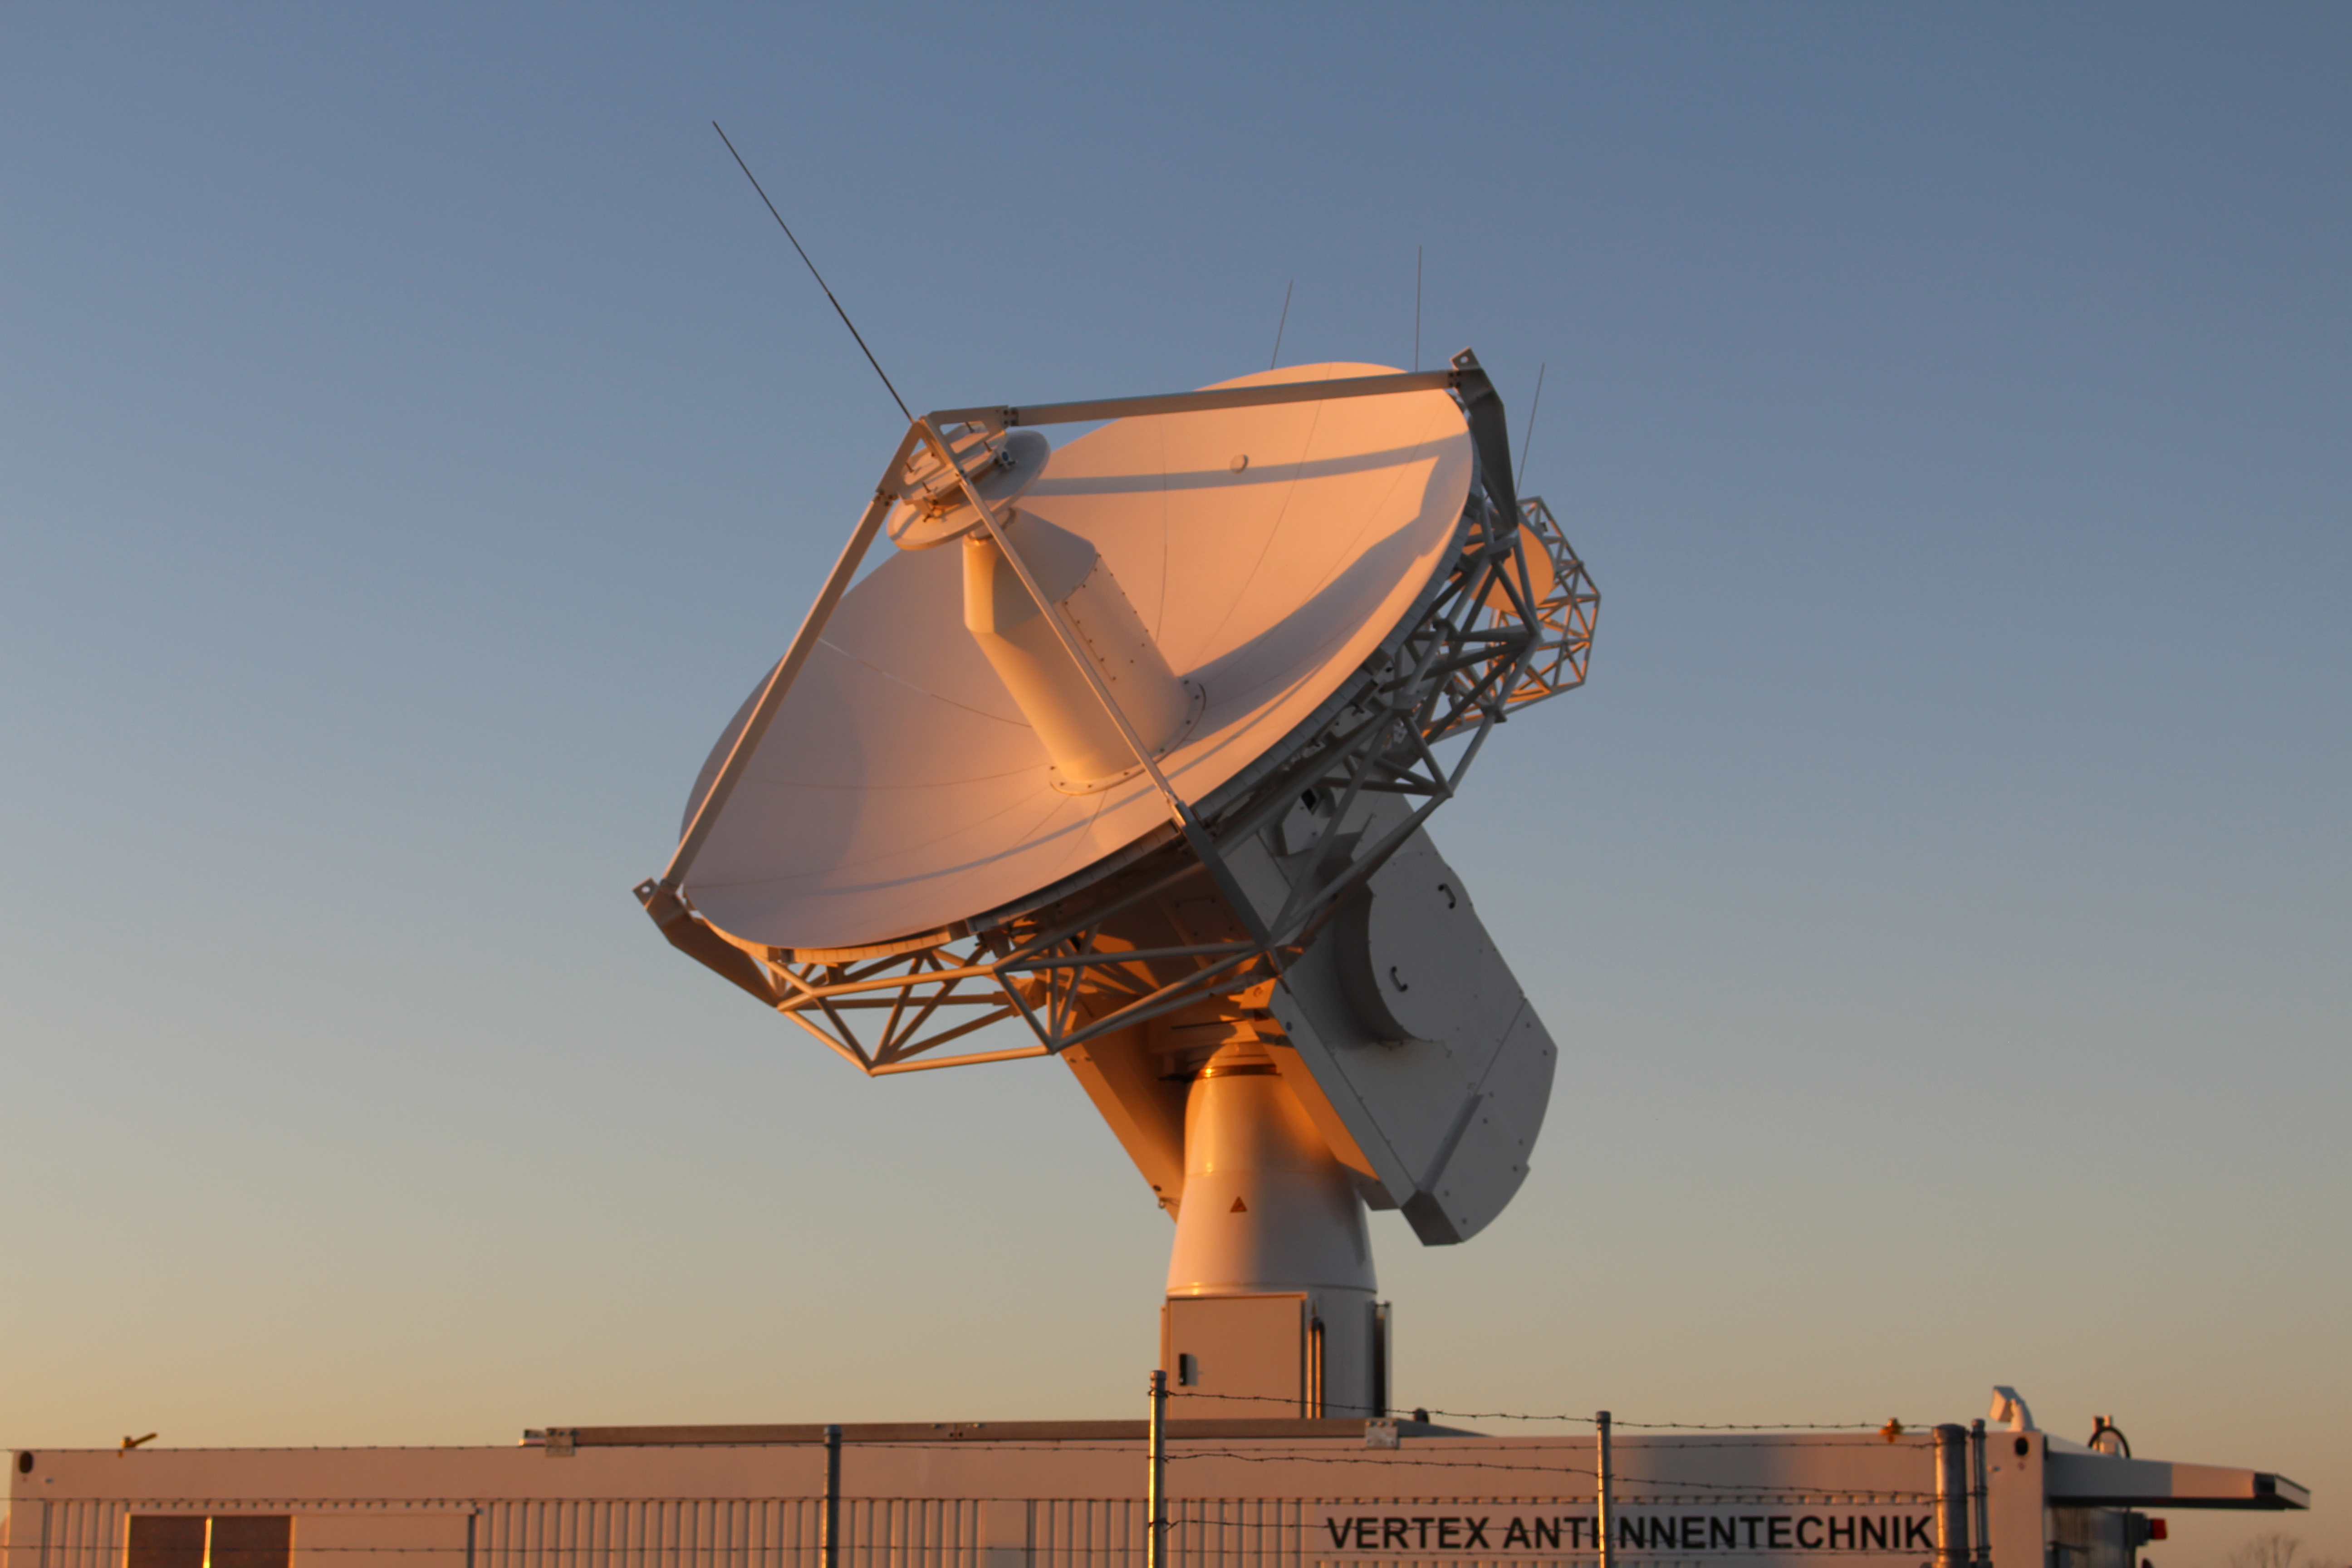 NN0-2 acquisition antenna, New Norcia, W. Australia, as seen during the #SocialSpaceWA event on 11 February 2016 by Duncan Hamilton.